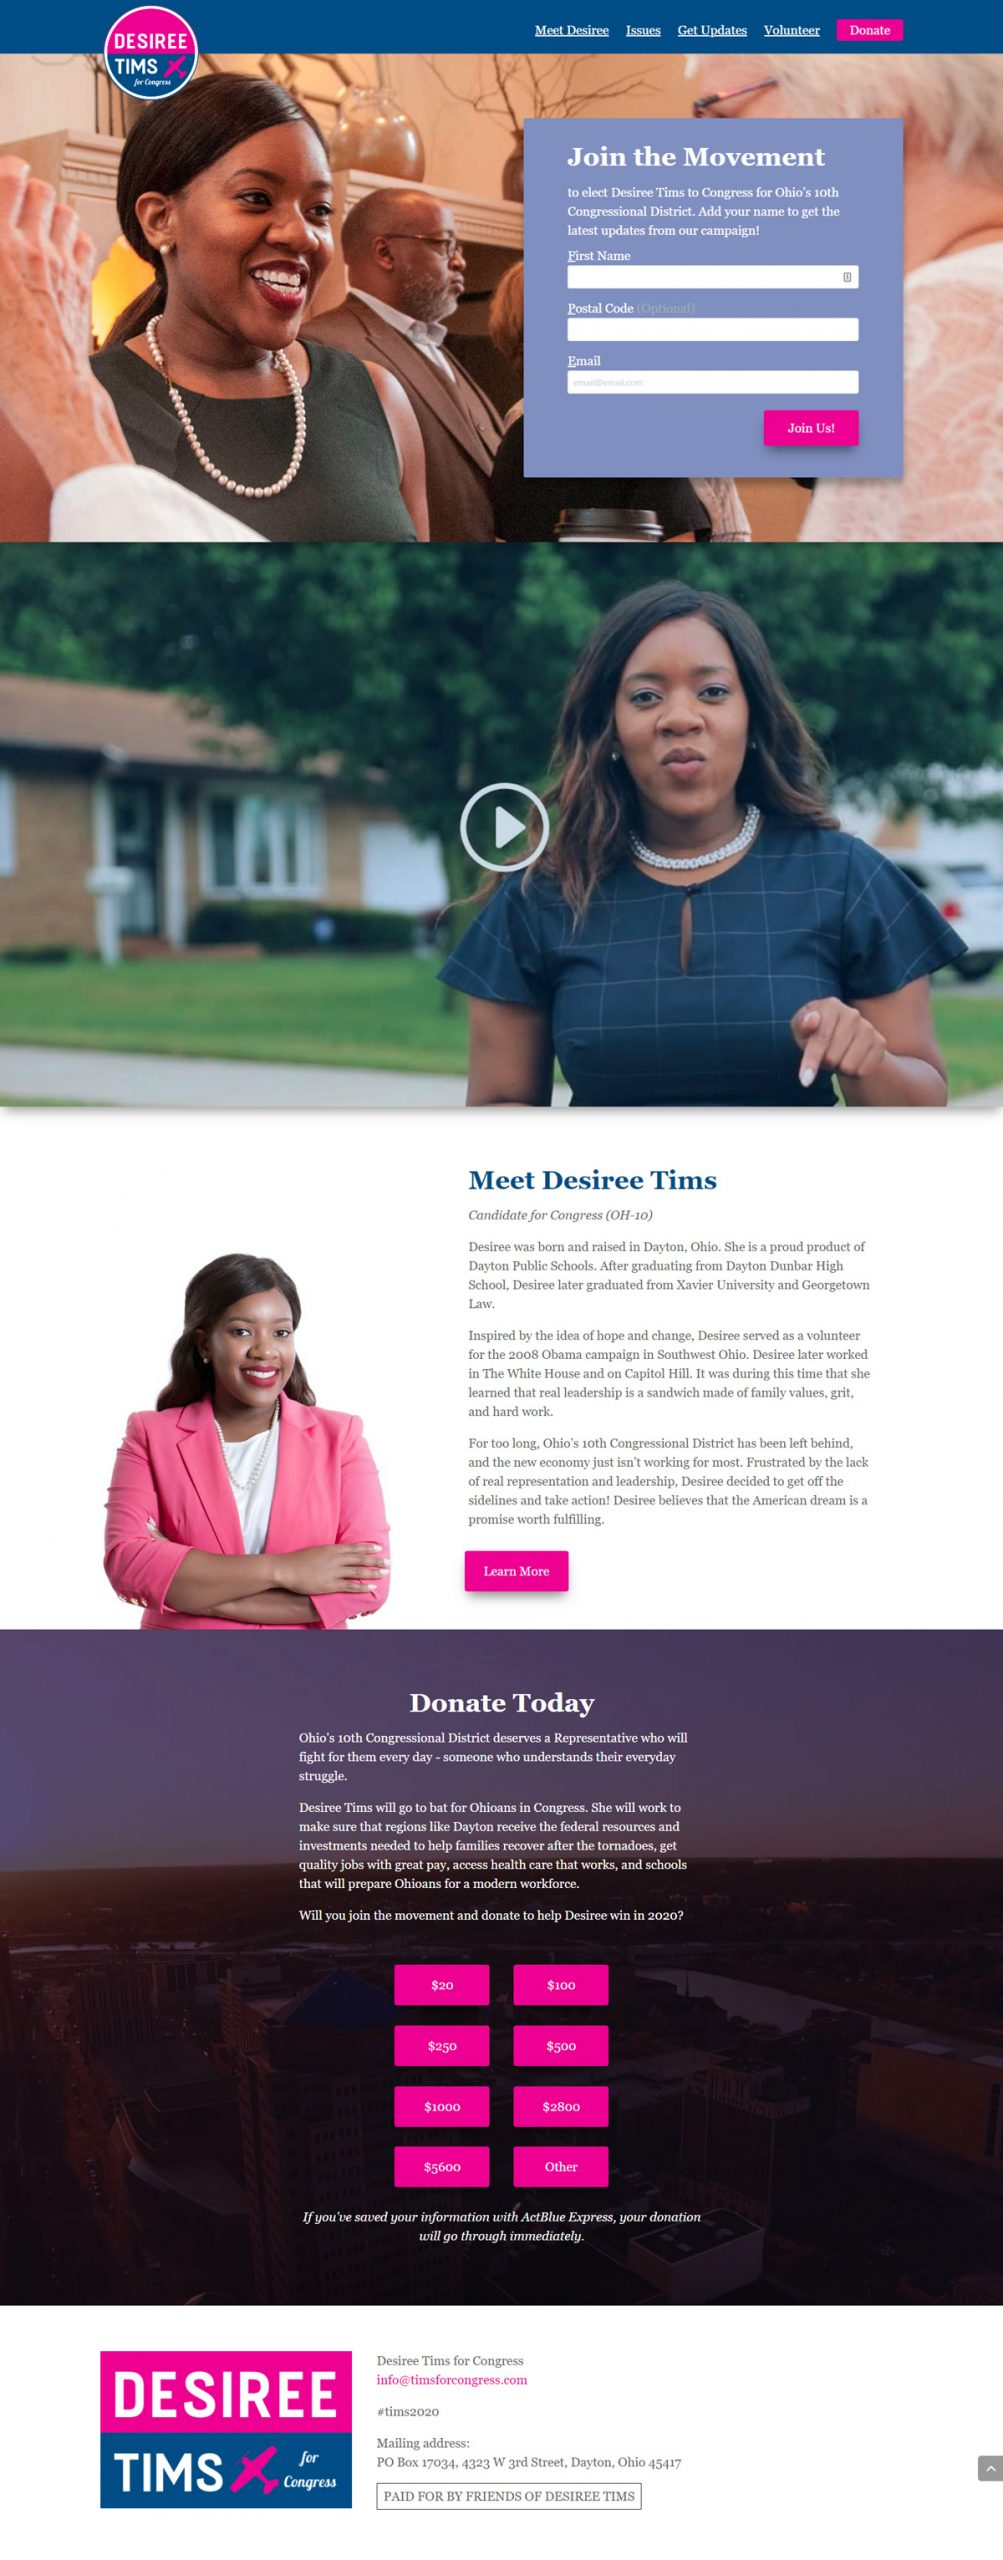 Tims for Congress homepage design